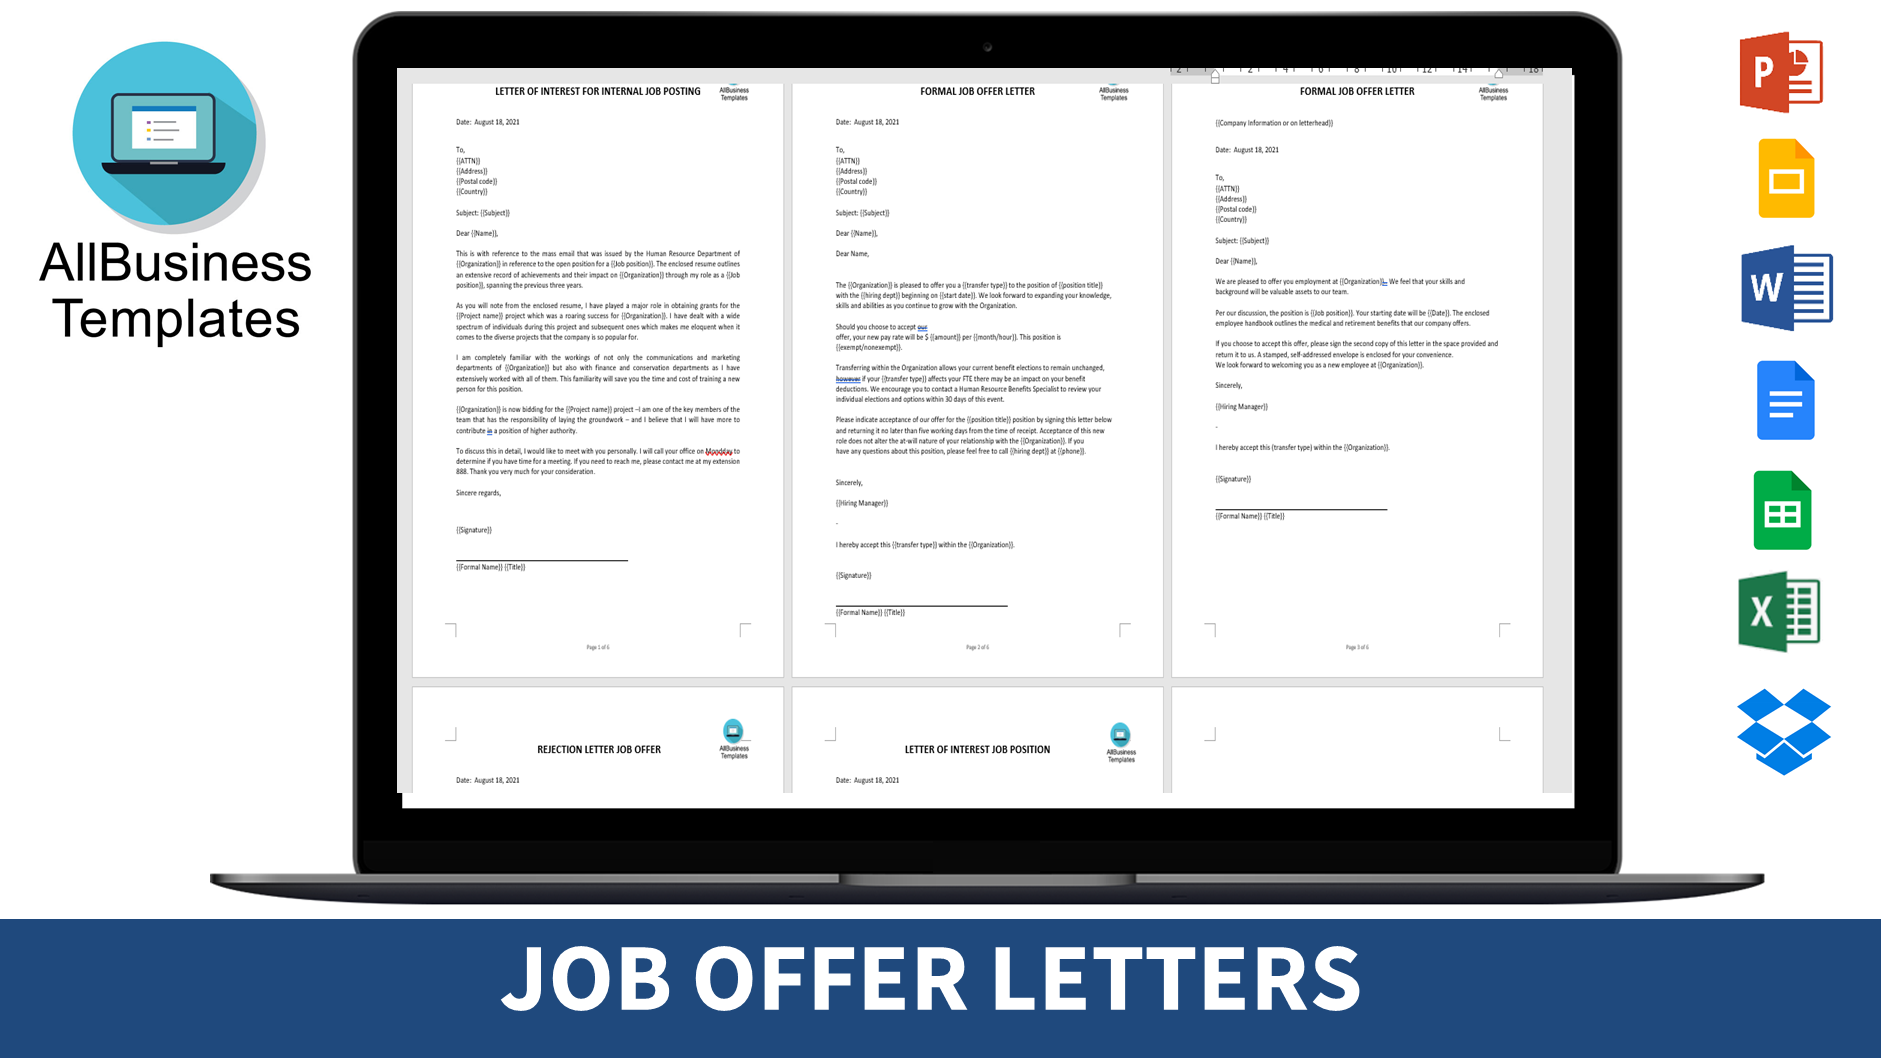 Free sample job offer letter template templates at sample job offer letter template main image maxwellsz